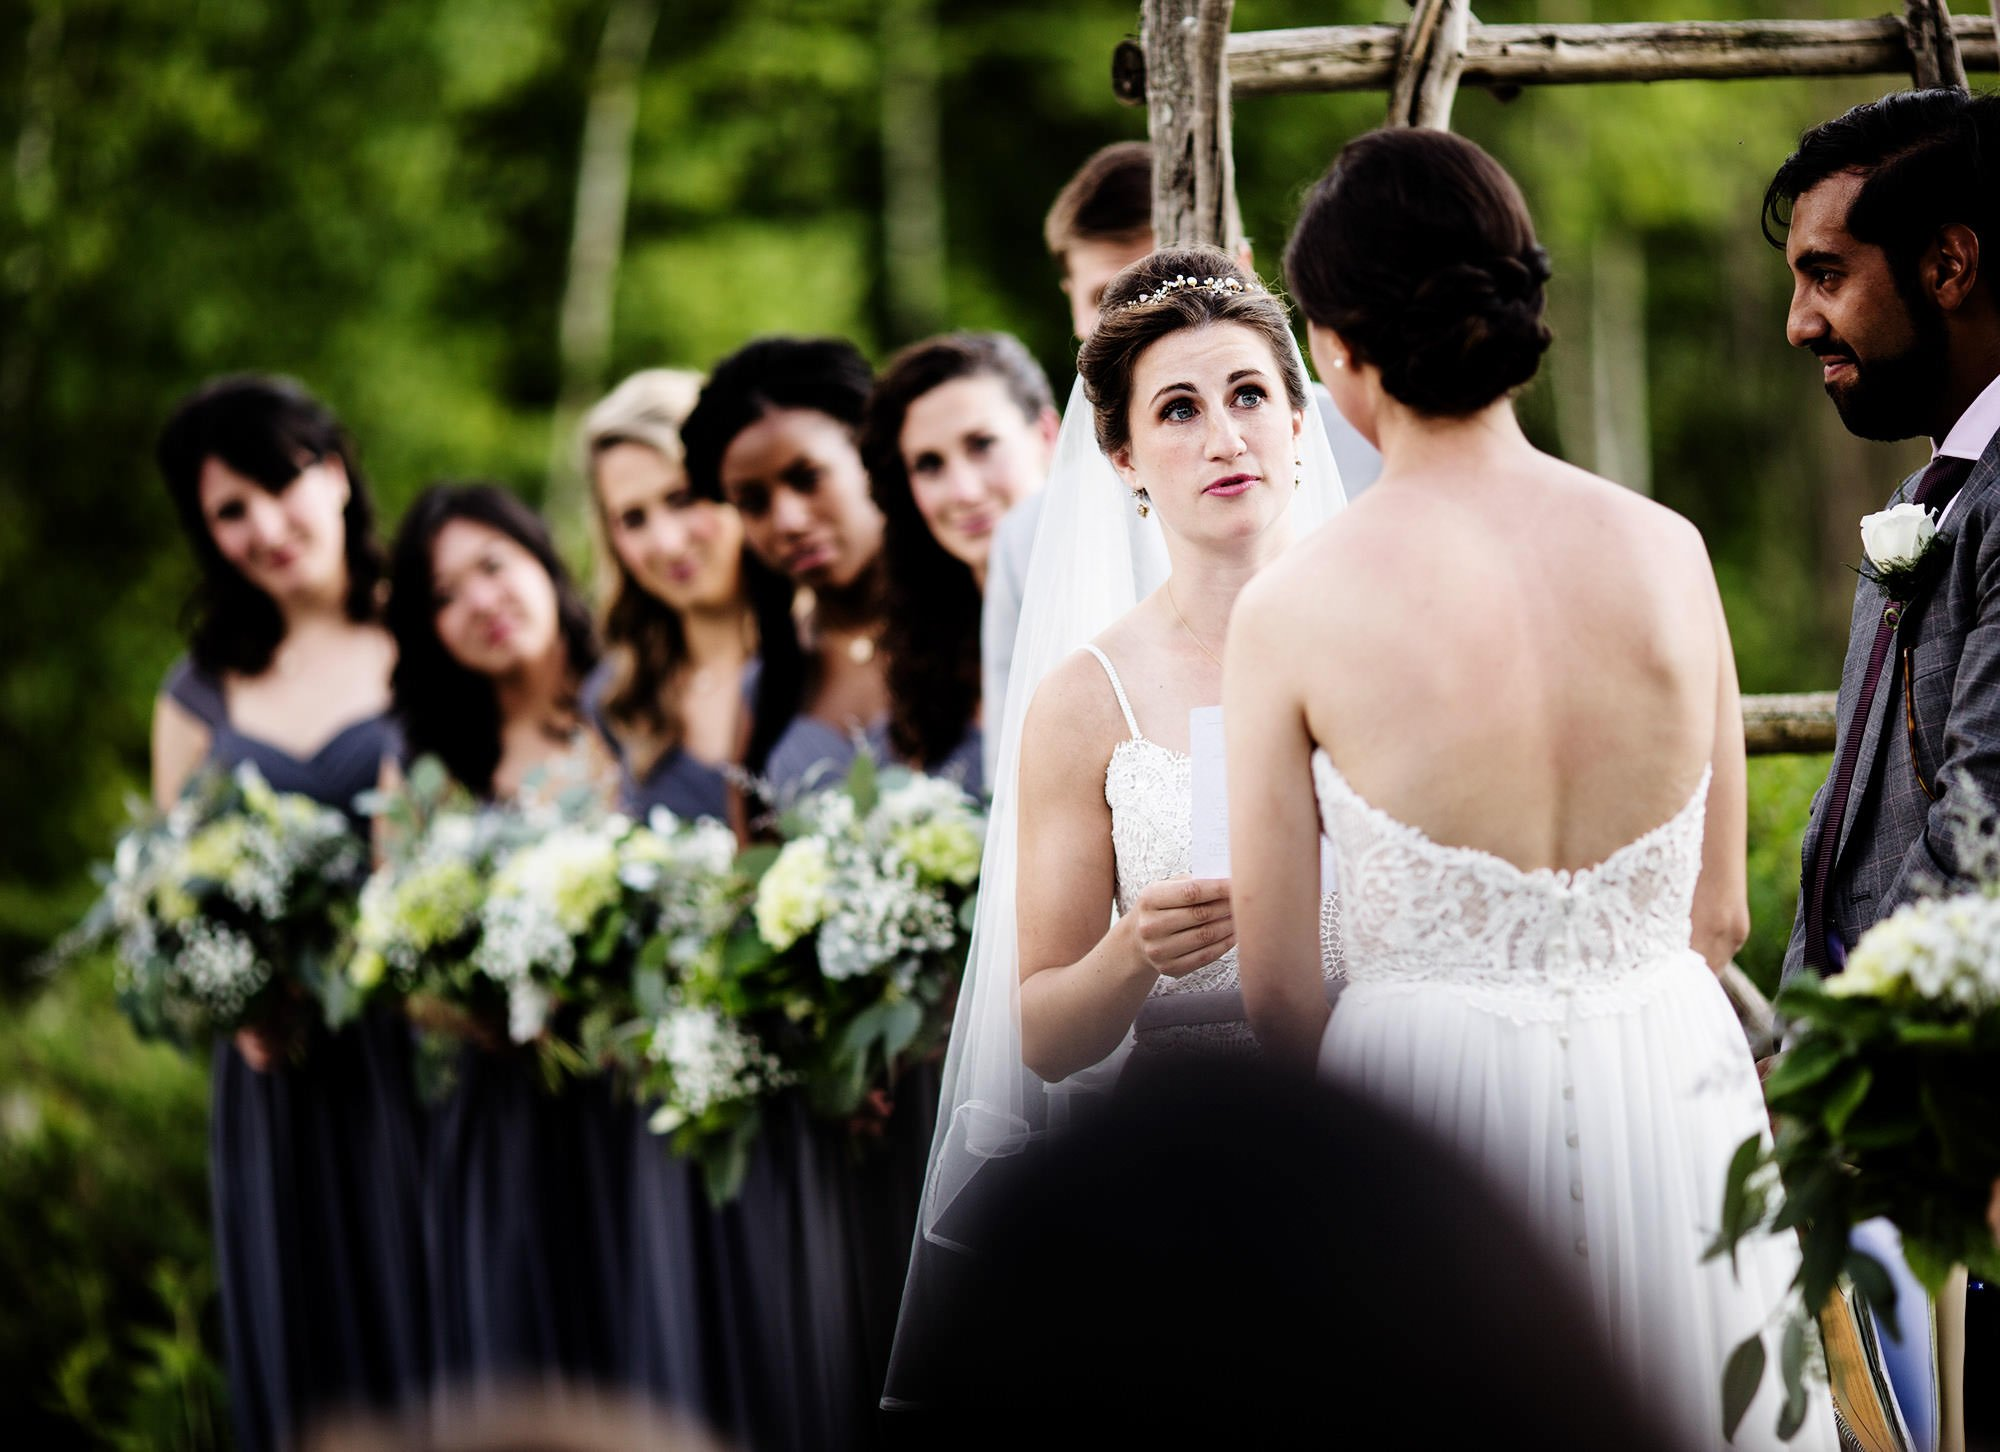 The brides exchange vows during the ceremony at The Ponds at Bolton Valley Wedding, Waterbury, VT